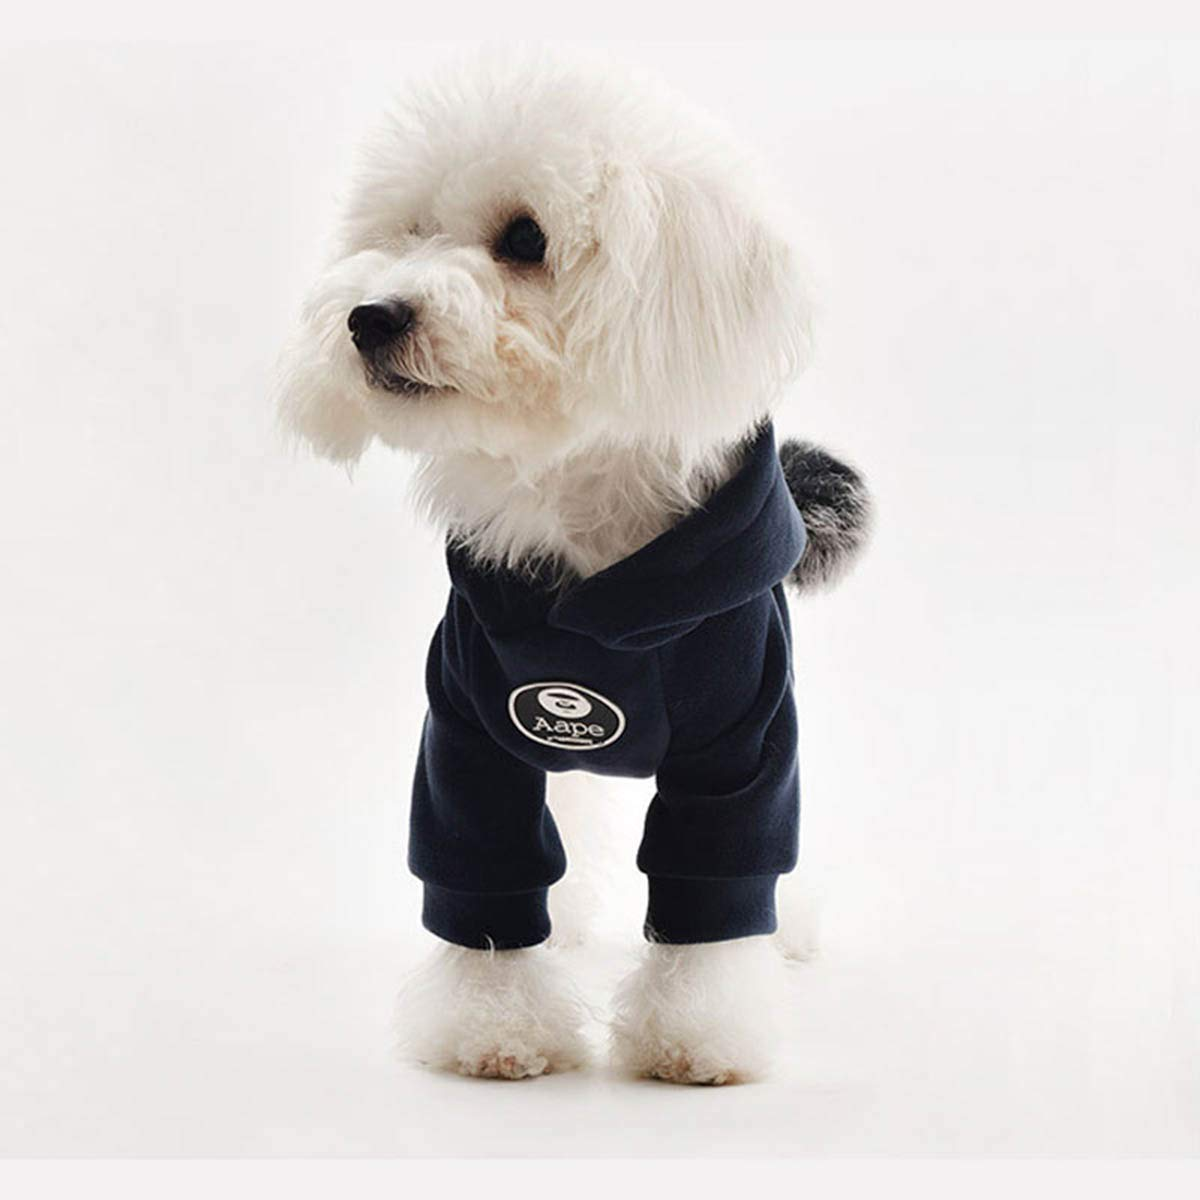 Navy XXL Navy XXL PETFDH Pet Dog Hoodies Clothes Cotton Autumn and Winter Sports Sweater Clothing Coat for Small Dog Teddy Law Fighting Navy XXL